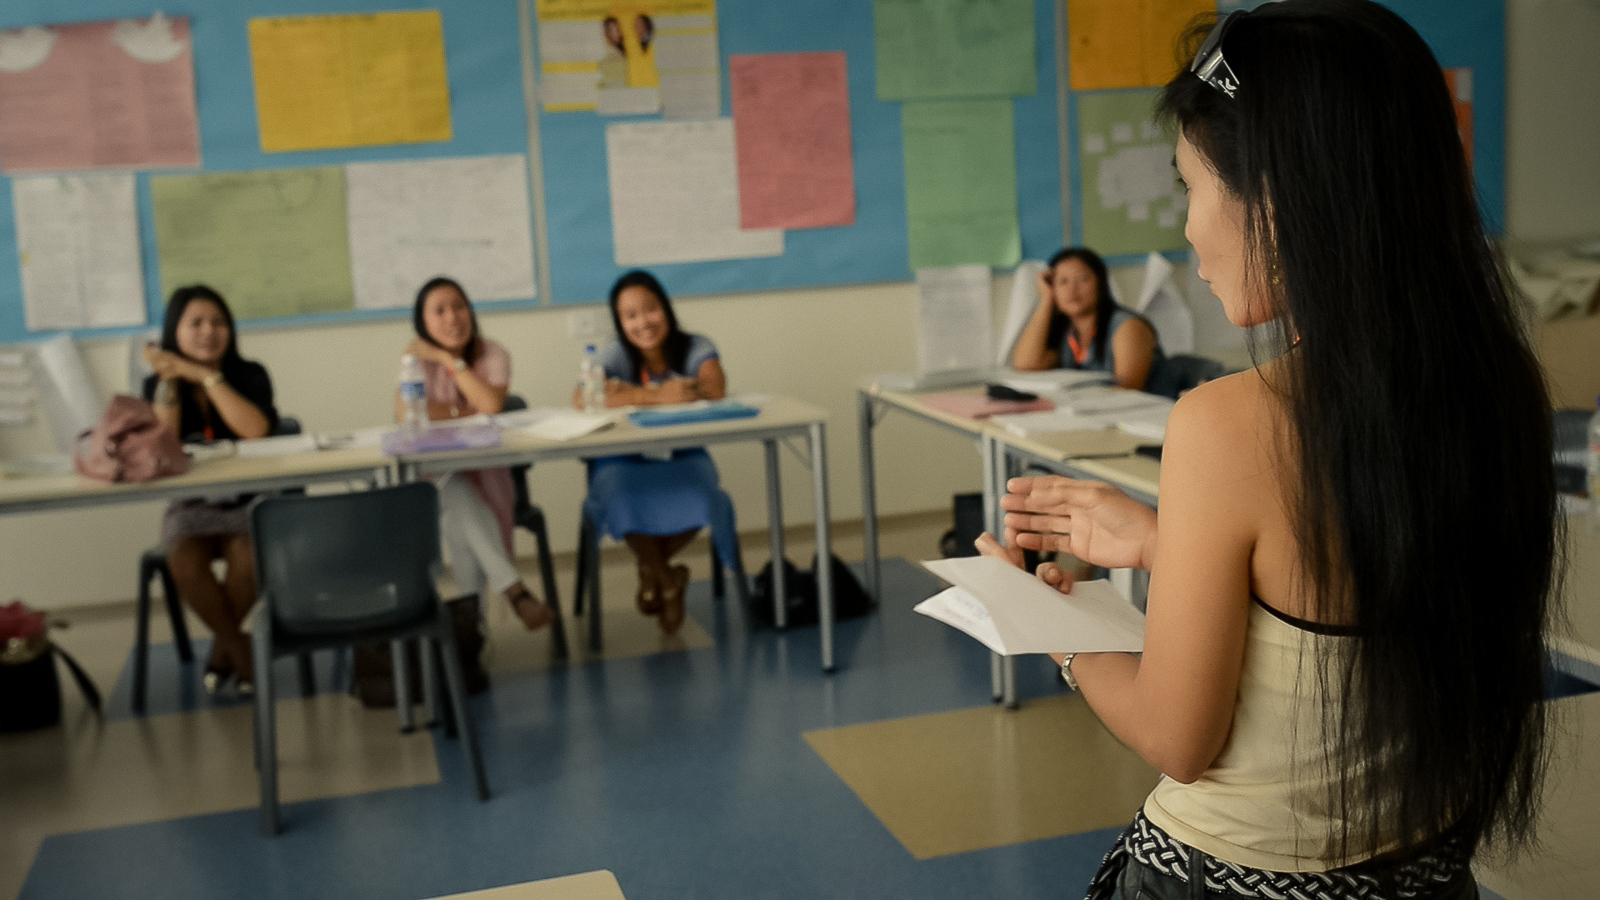 A Foreign domestic worker gives a presentation in a class at 'Aidha' - a business school for domestic workers in Singapore.